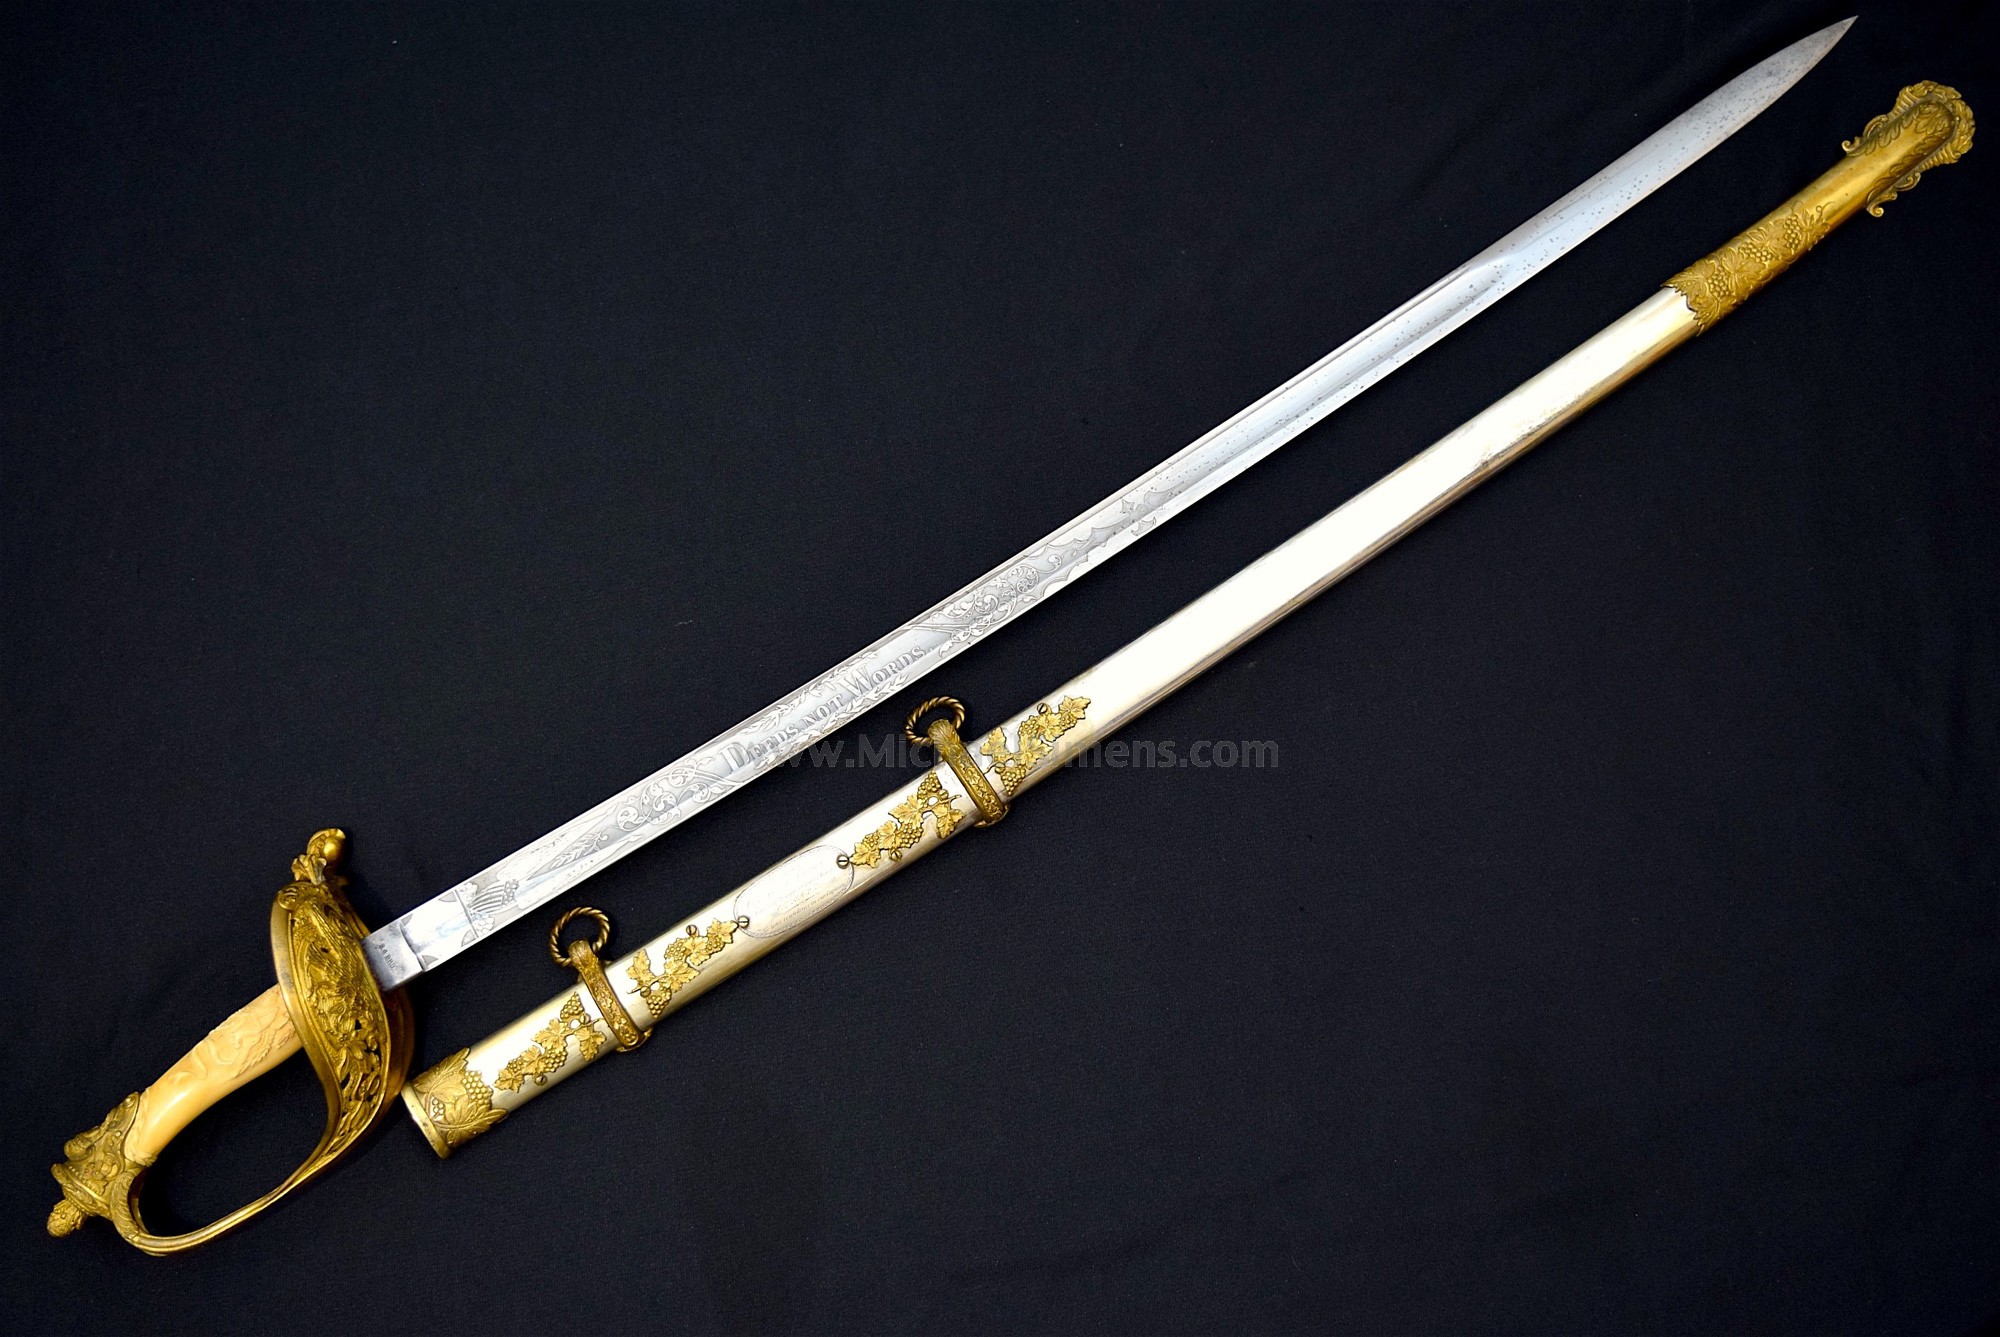 OUTSTANDING, INSCRIBED CIVIL WAR SABER WITH CARVED IVORY GRIP